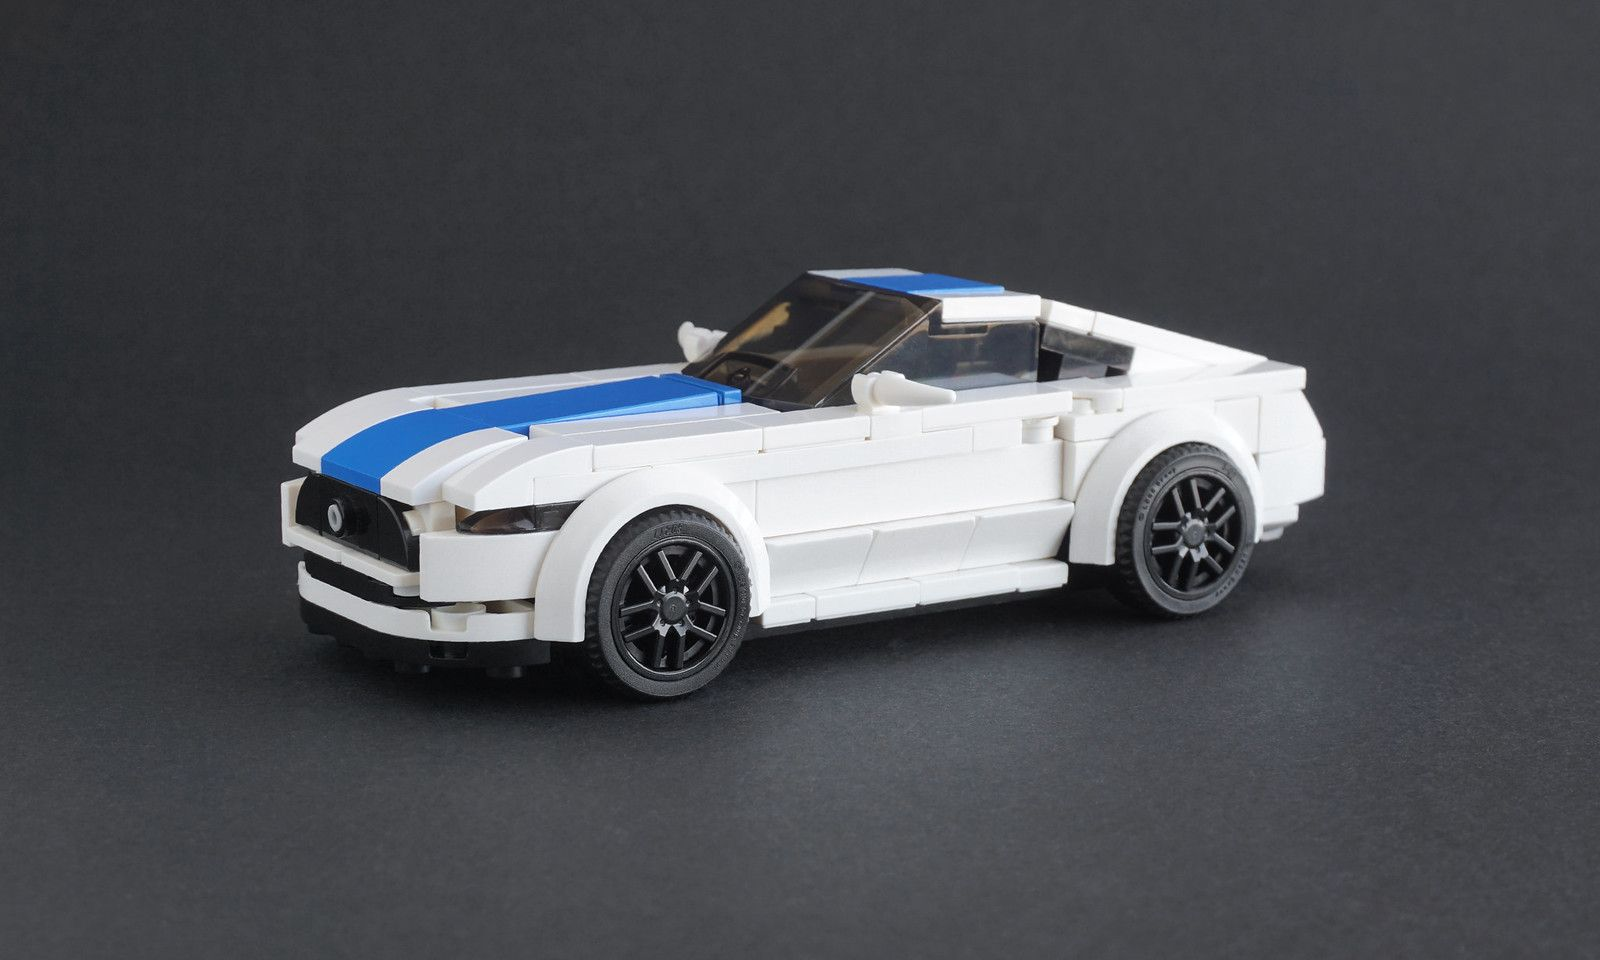 Ford Mustang Gt 2019 Ford Mustang Gt Lego Cars Ford Mustang